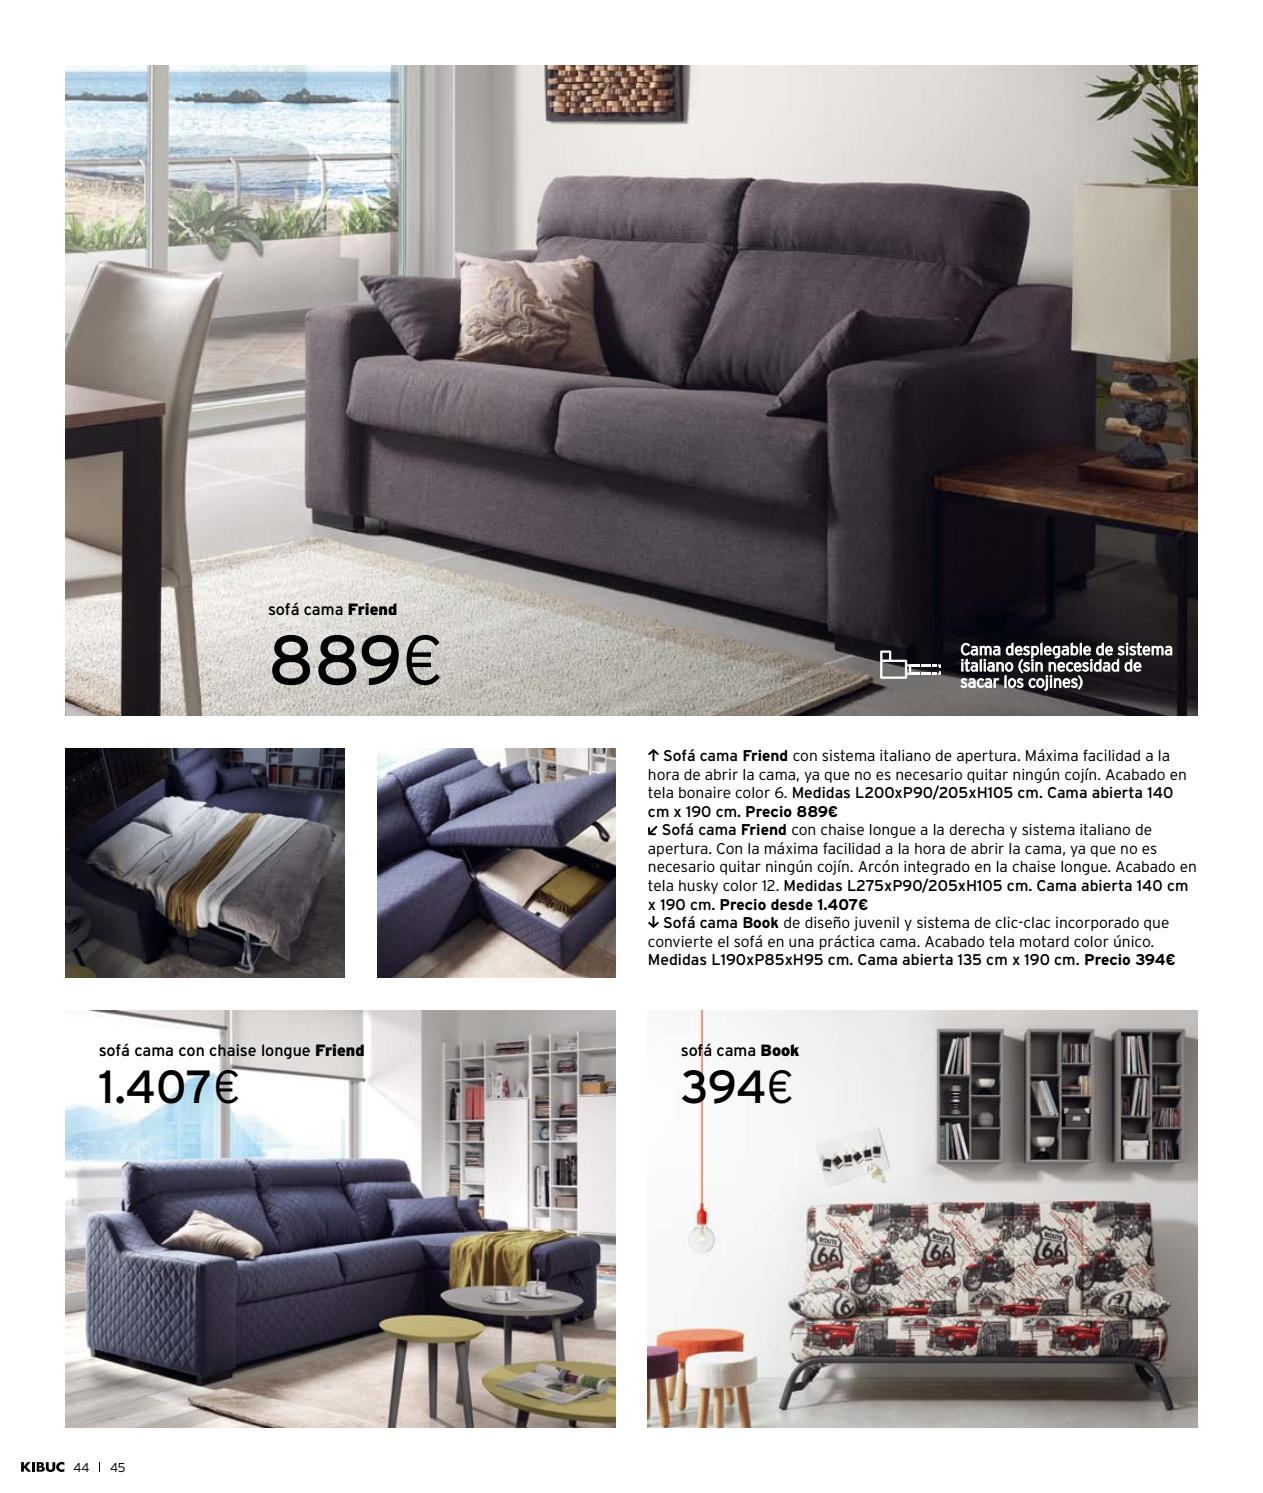 sofa cama chaise longue sistema italiano distressed leather sectional with catalogo general kibuc 2018 by issuu